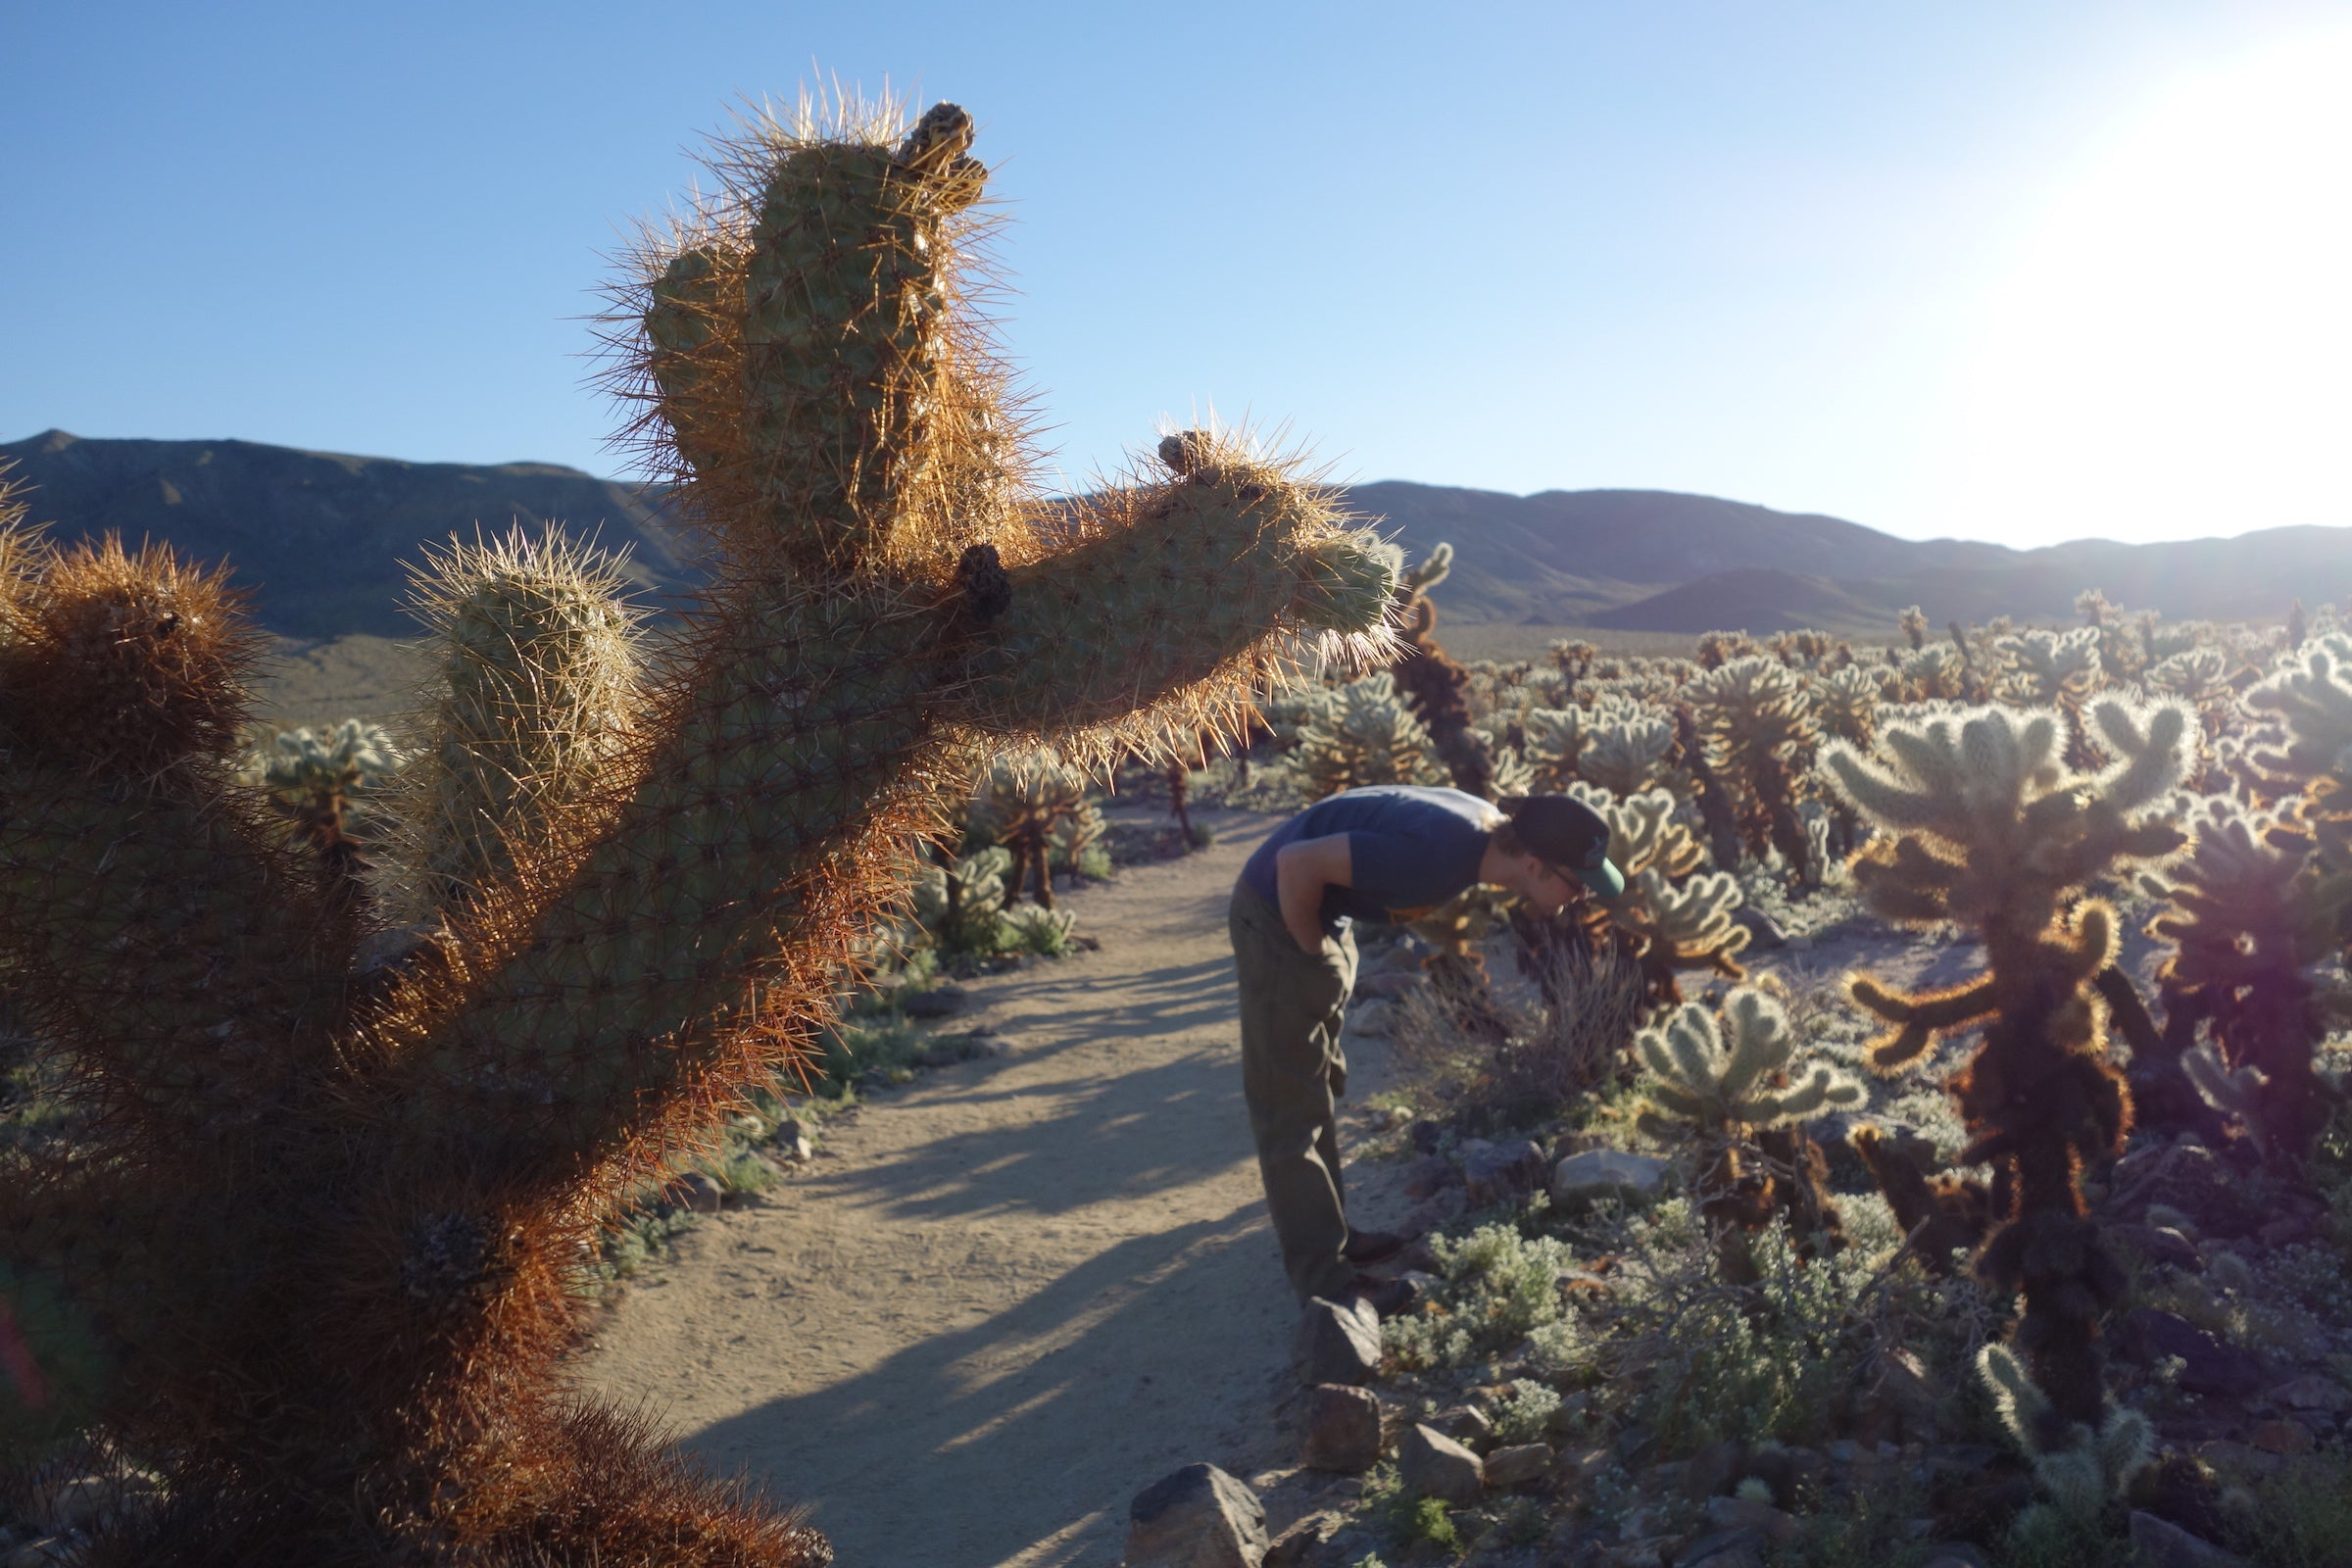 observing cacti in joshua tree national park